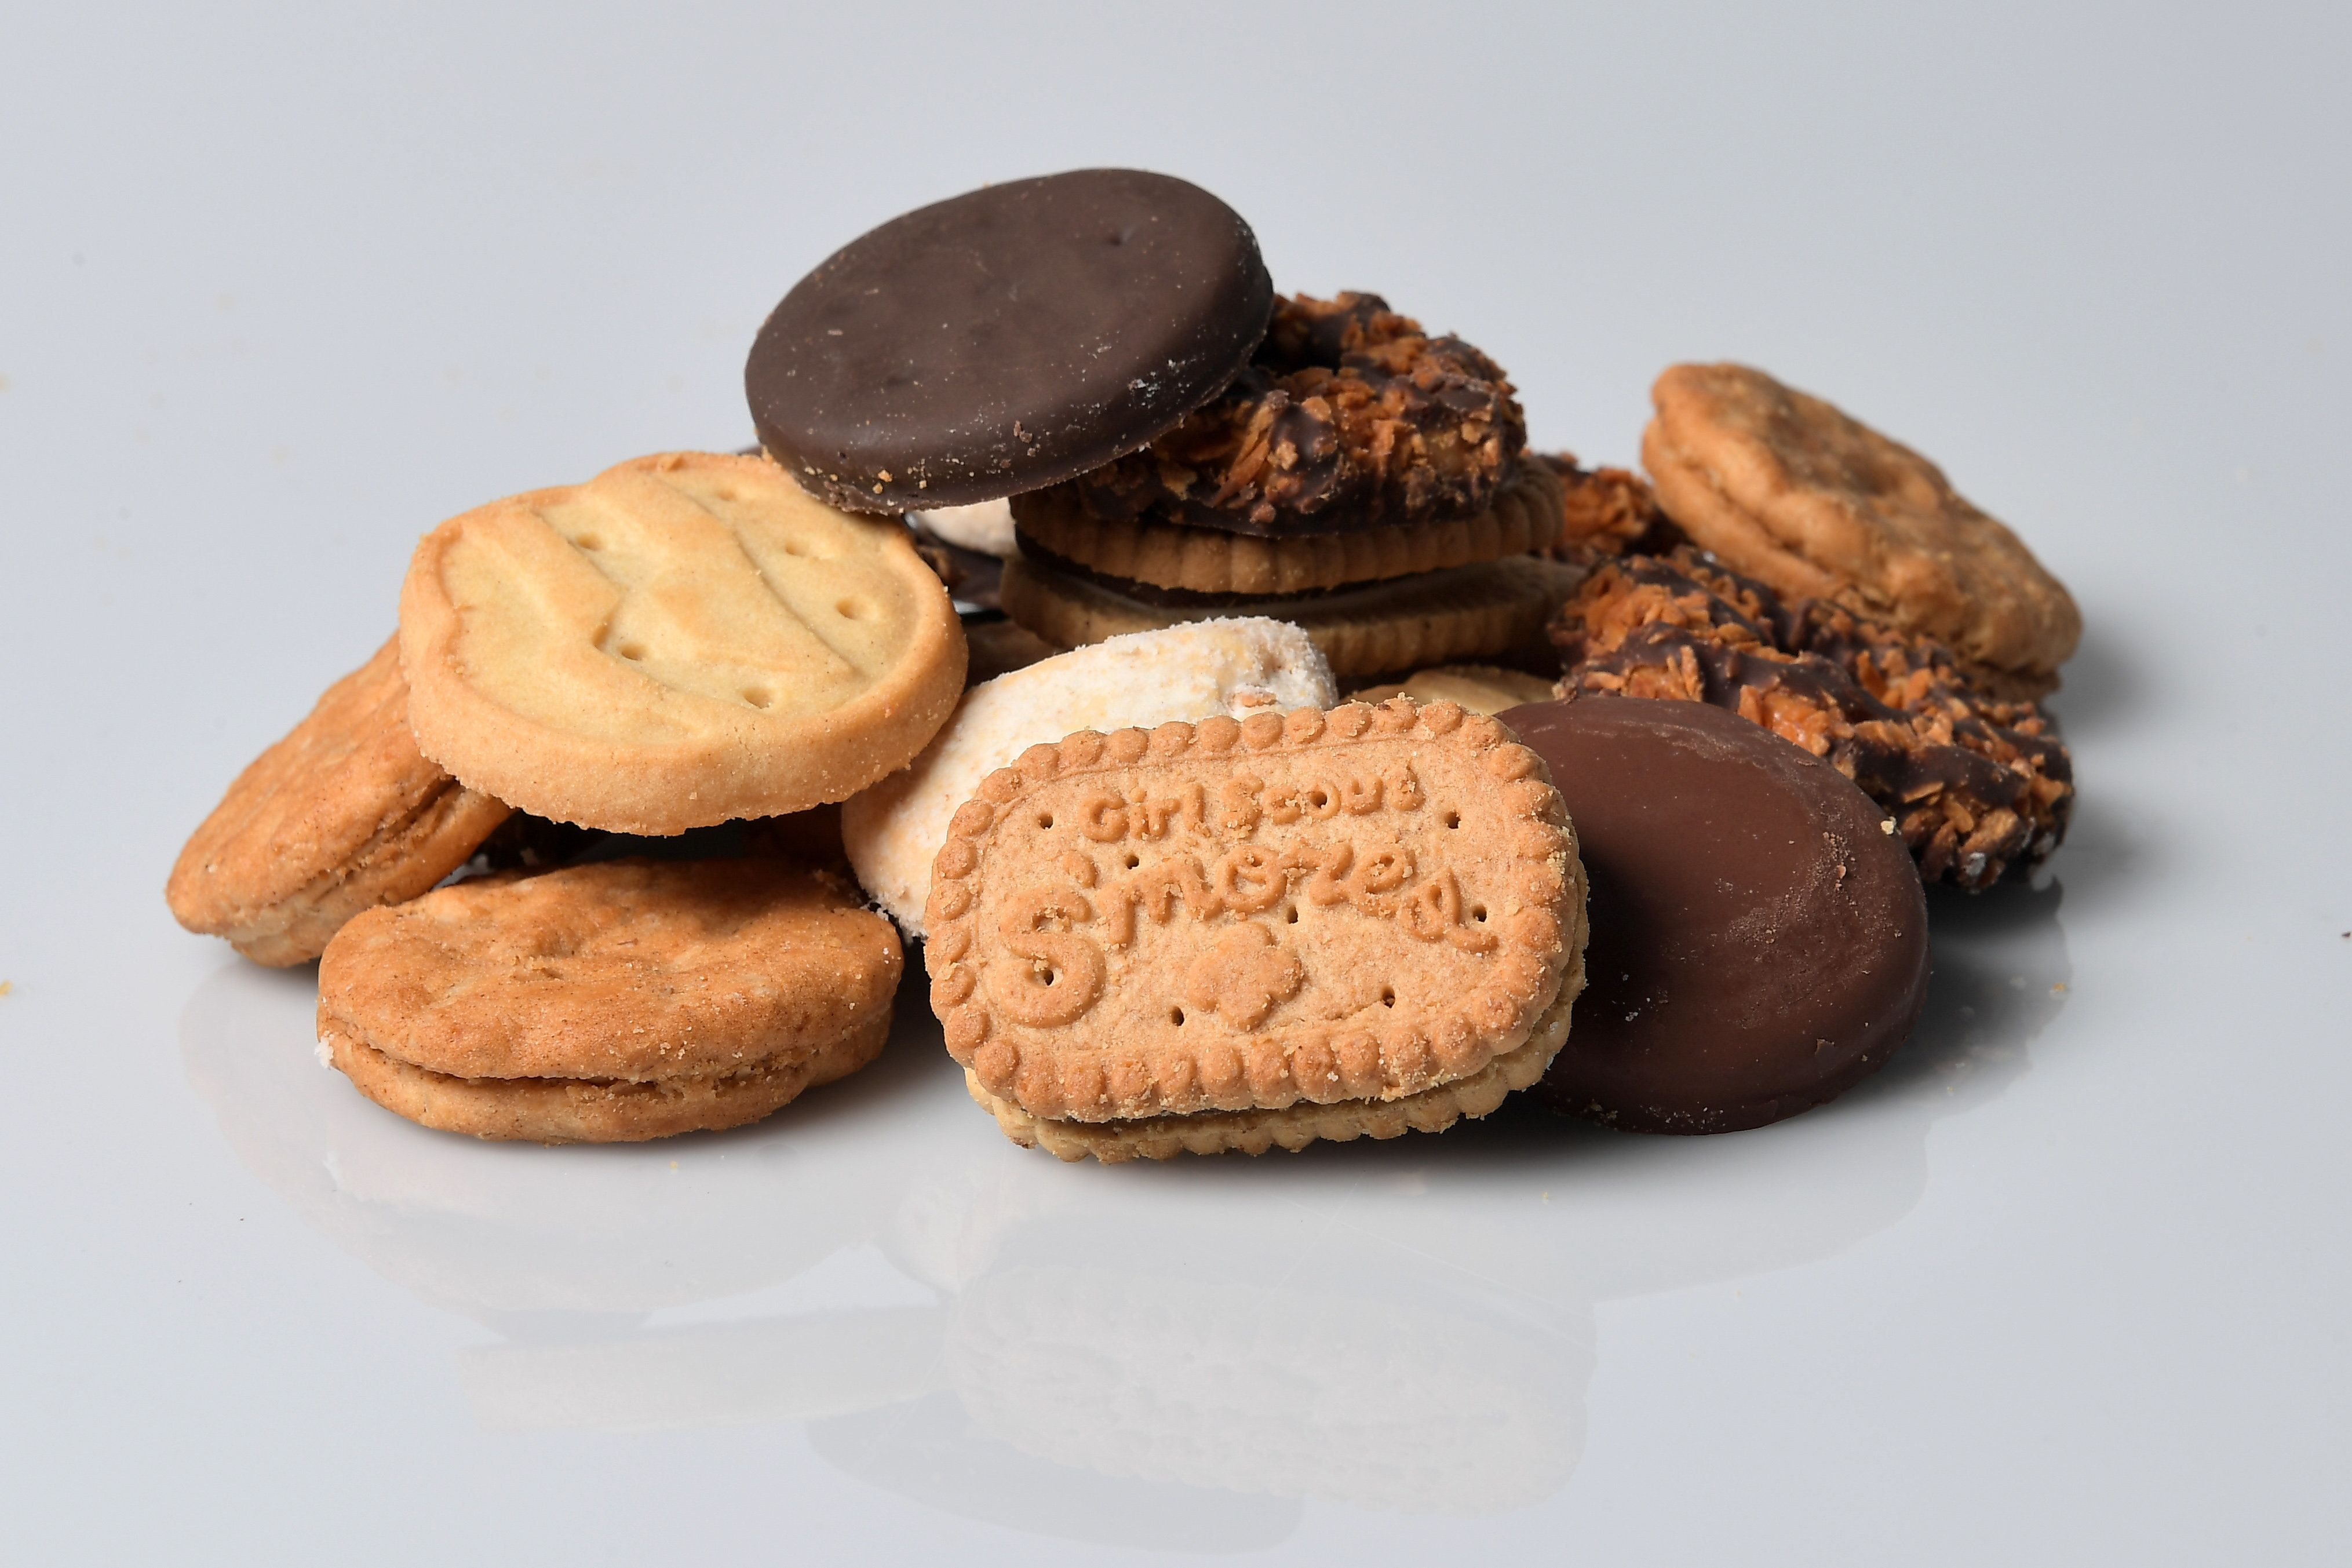 WASHINGTON, DC - JANUARY 11: The seven Girl Scout cookies available are  the newest, Girl Scout S'mores, Samoas, Do-si-dos, Tagalongs, Trefoils, Savannah Smiles and top seller Thin Mints photographed January 11, 2017 in Washington, DC. (Photo by Katherine Frey/The Washington Post via Getty Images)